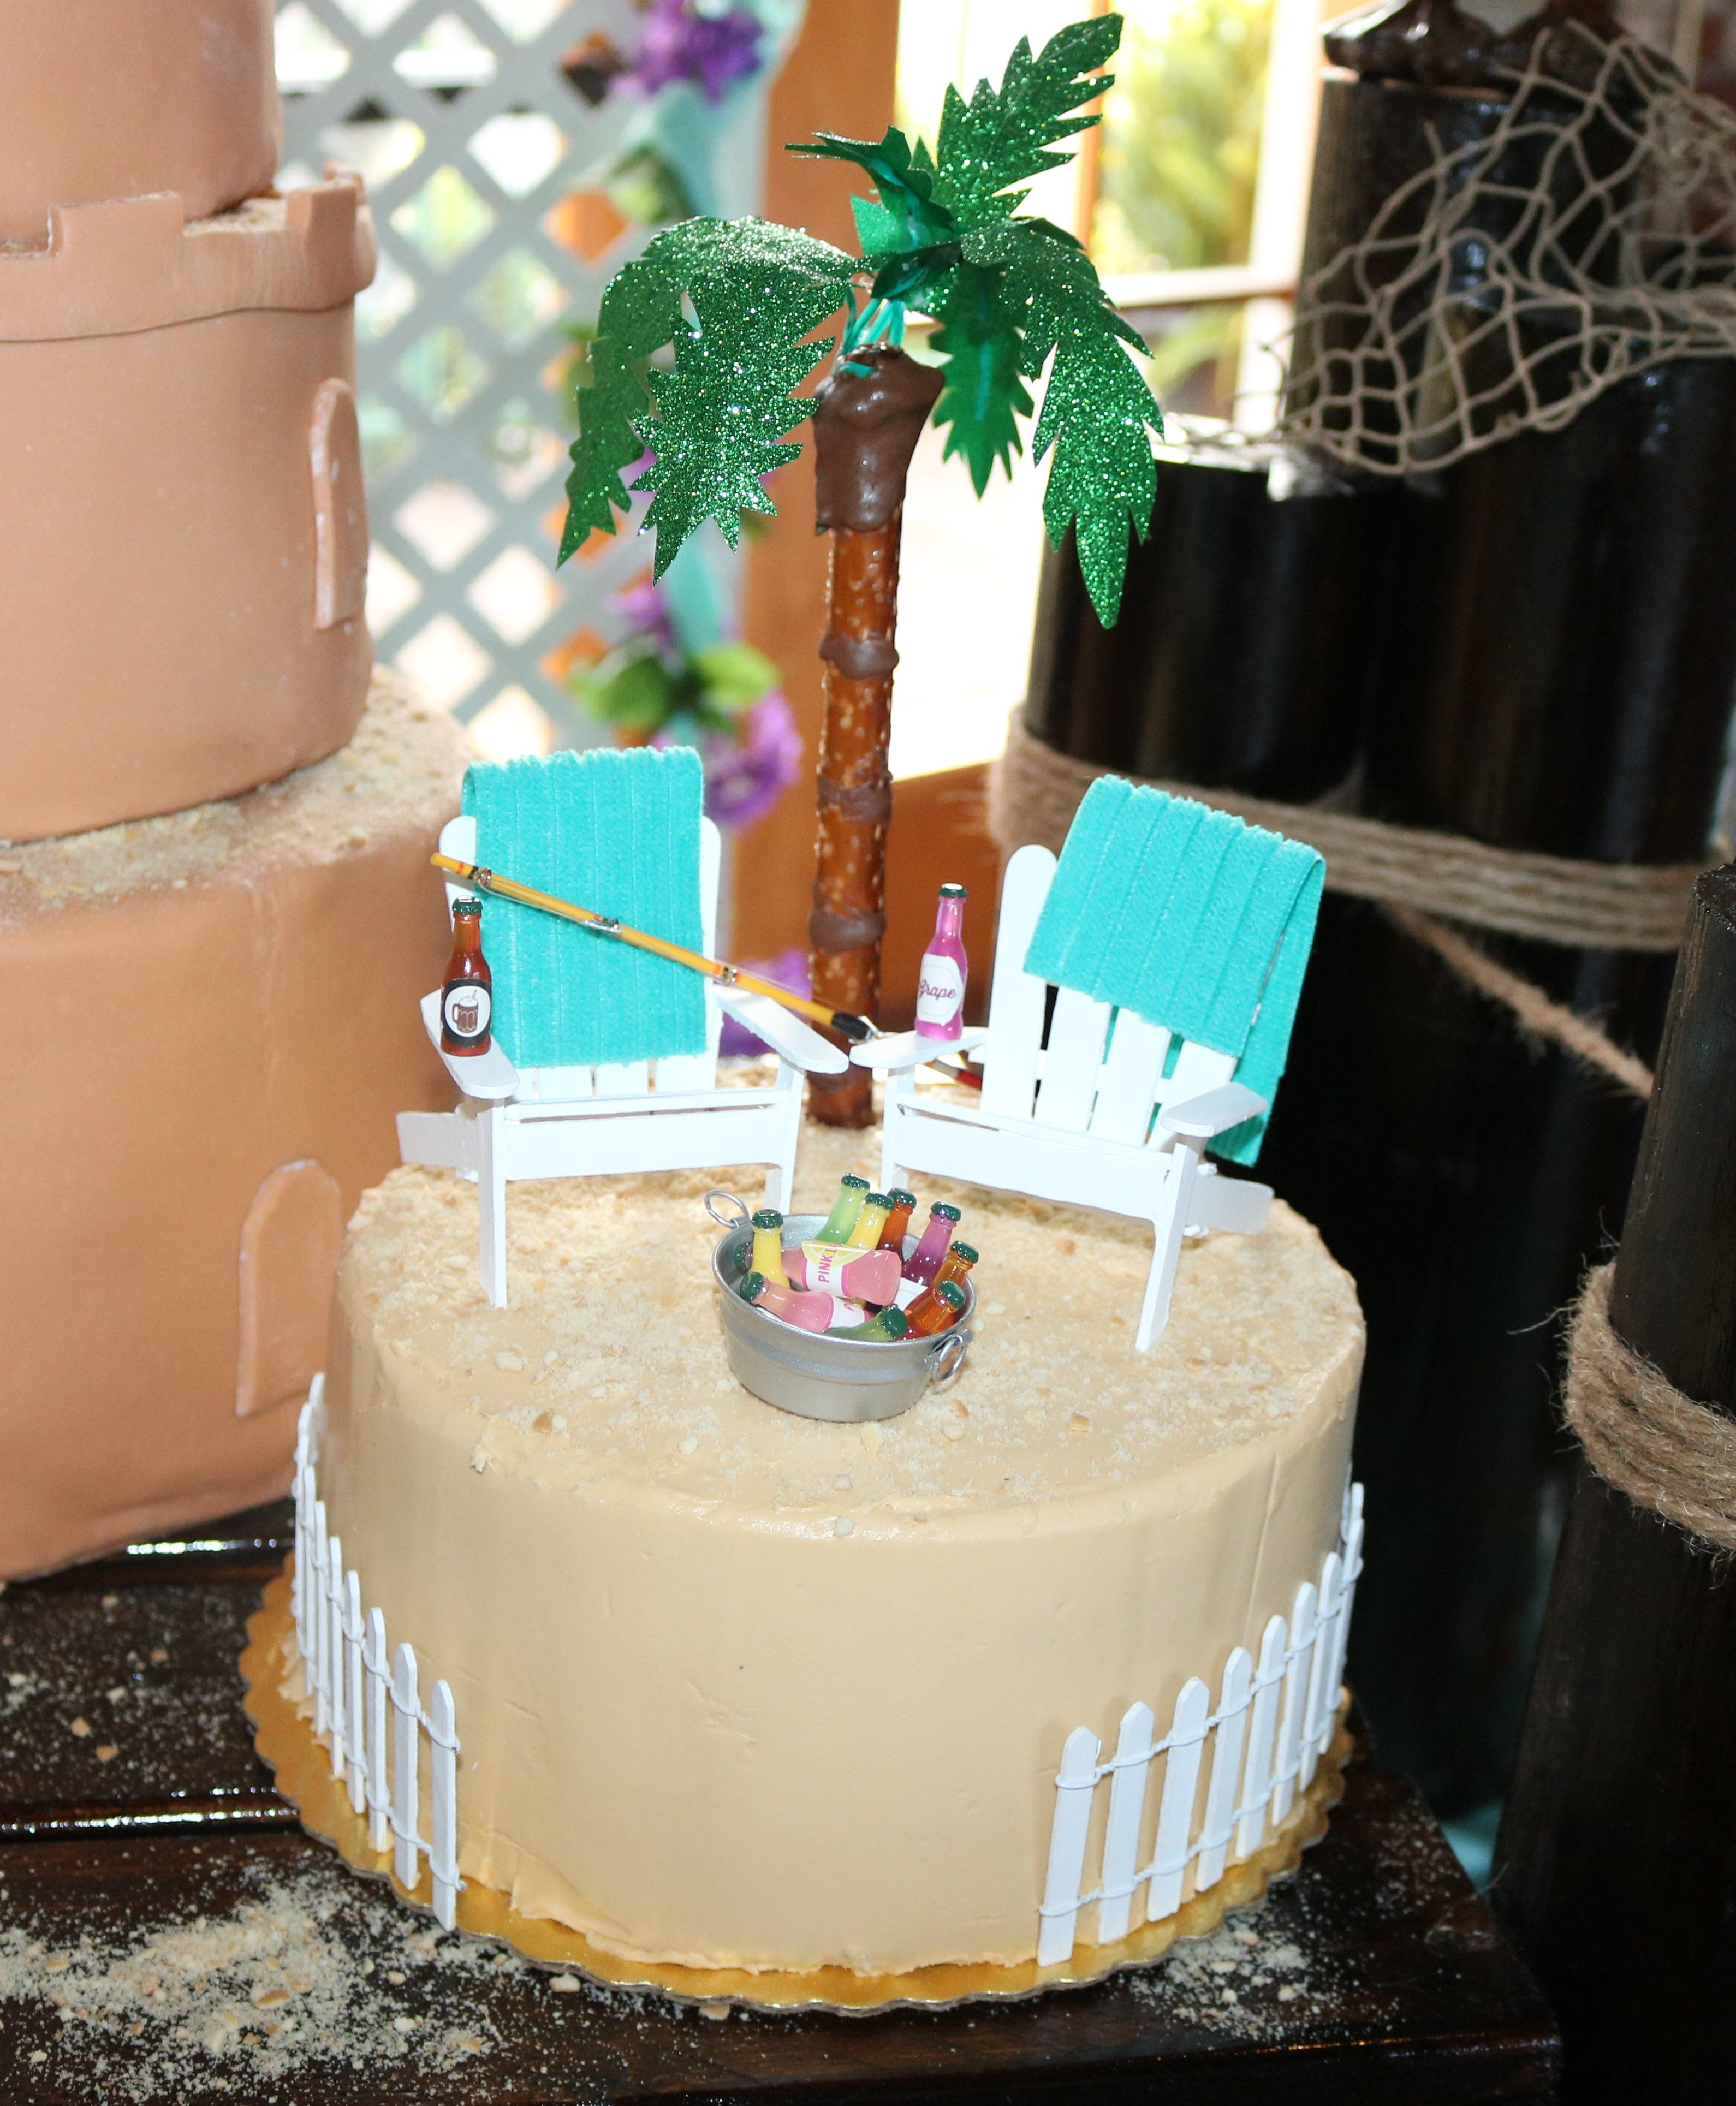 Beach Wedding Cake Chairs Made From Popsicle Sticks Towels Dollar Tree Hand